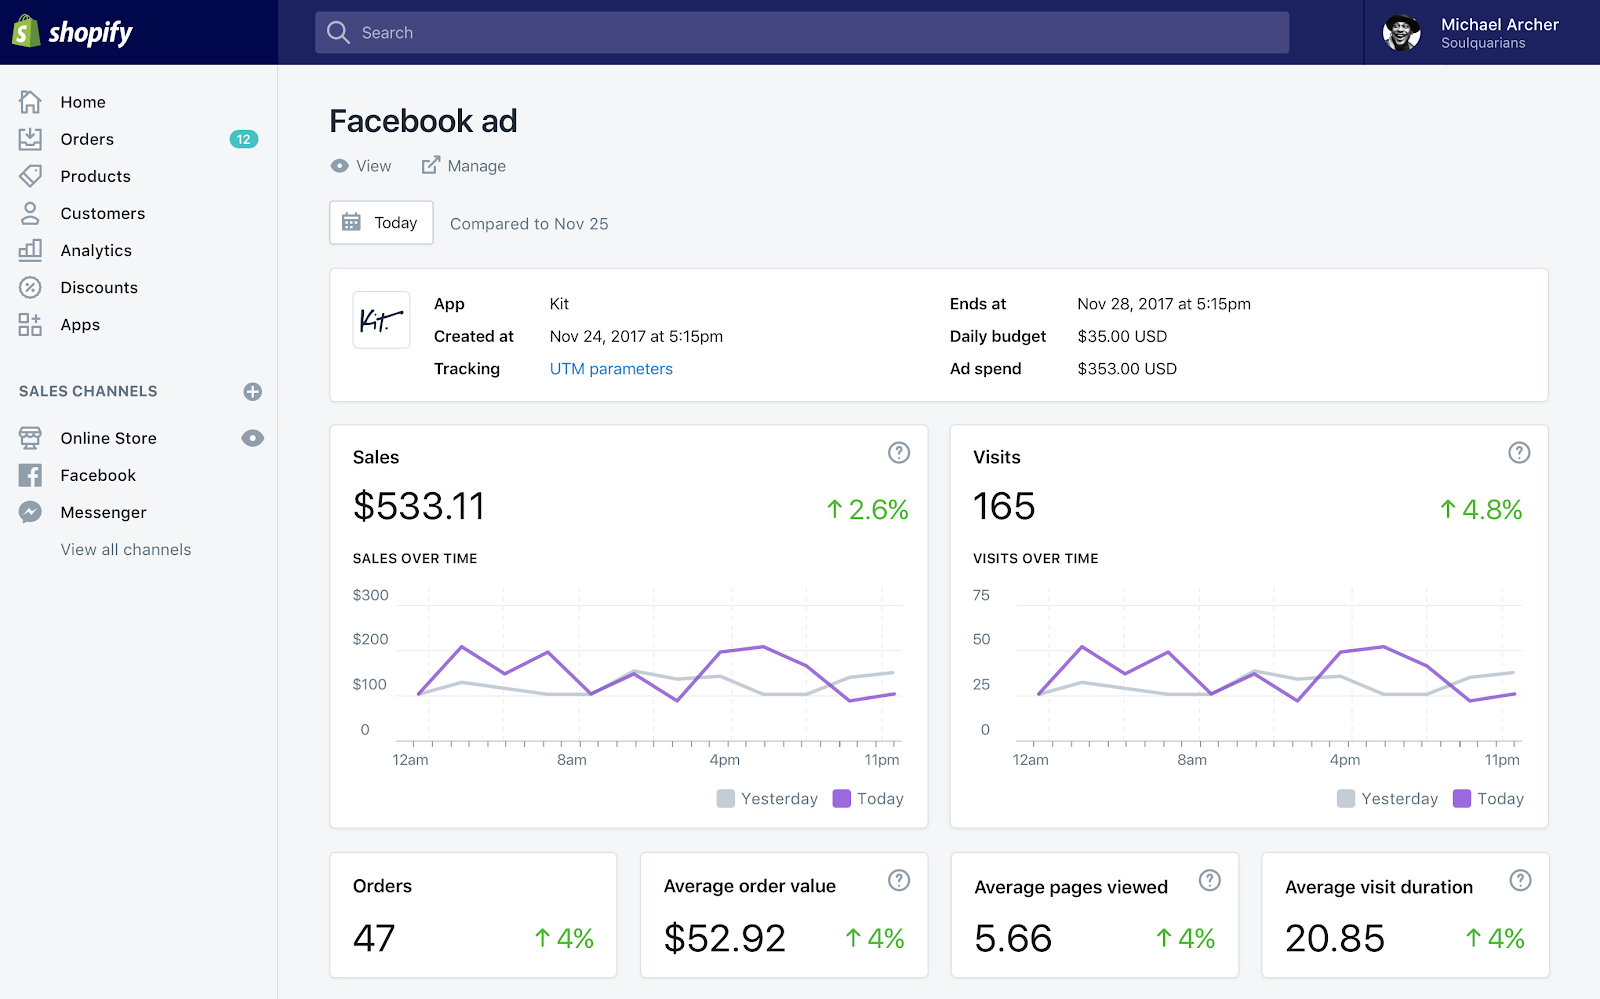 Facebook Ad Analytics in Shopify